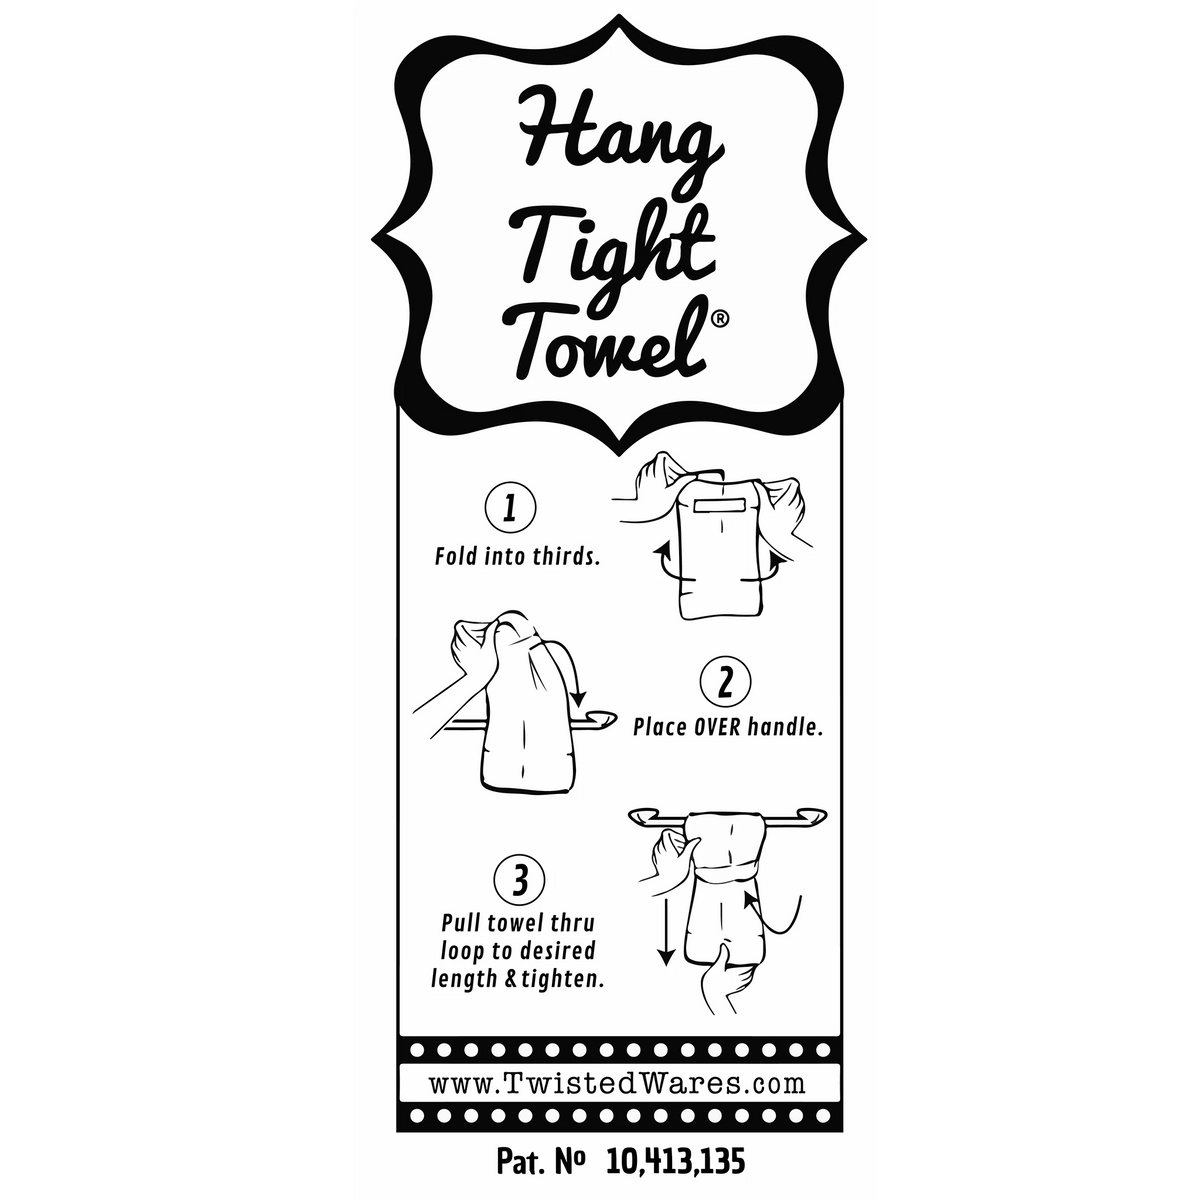 Good in Bed Hang Tight Towel - Heart of the Home PA